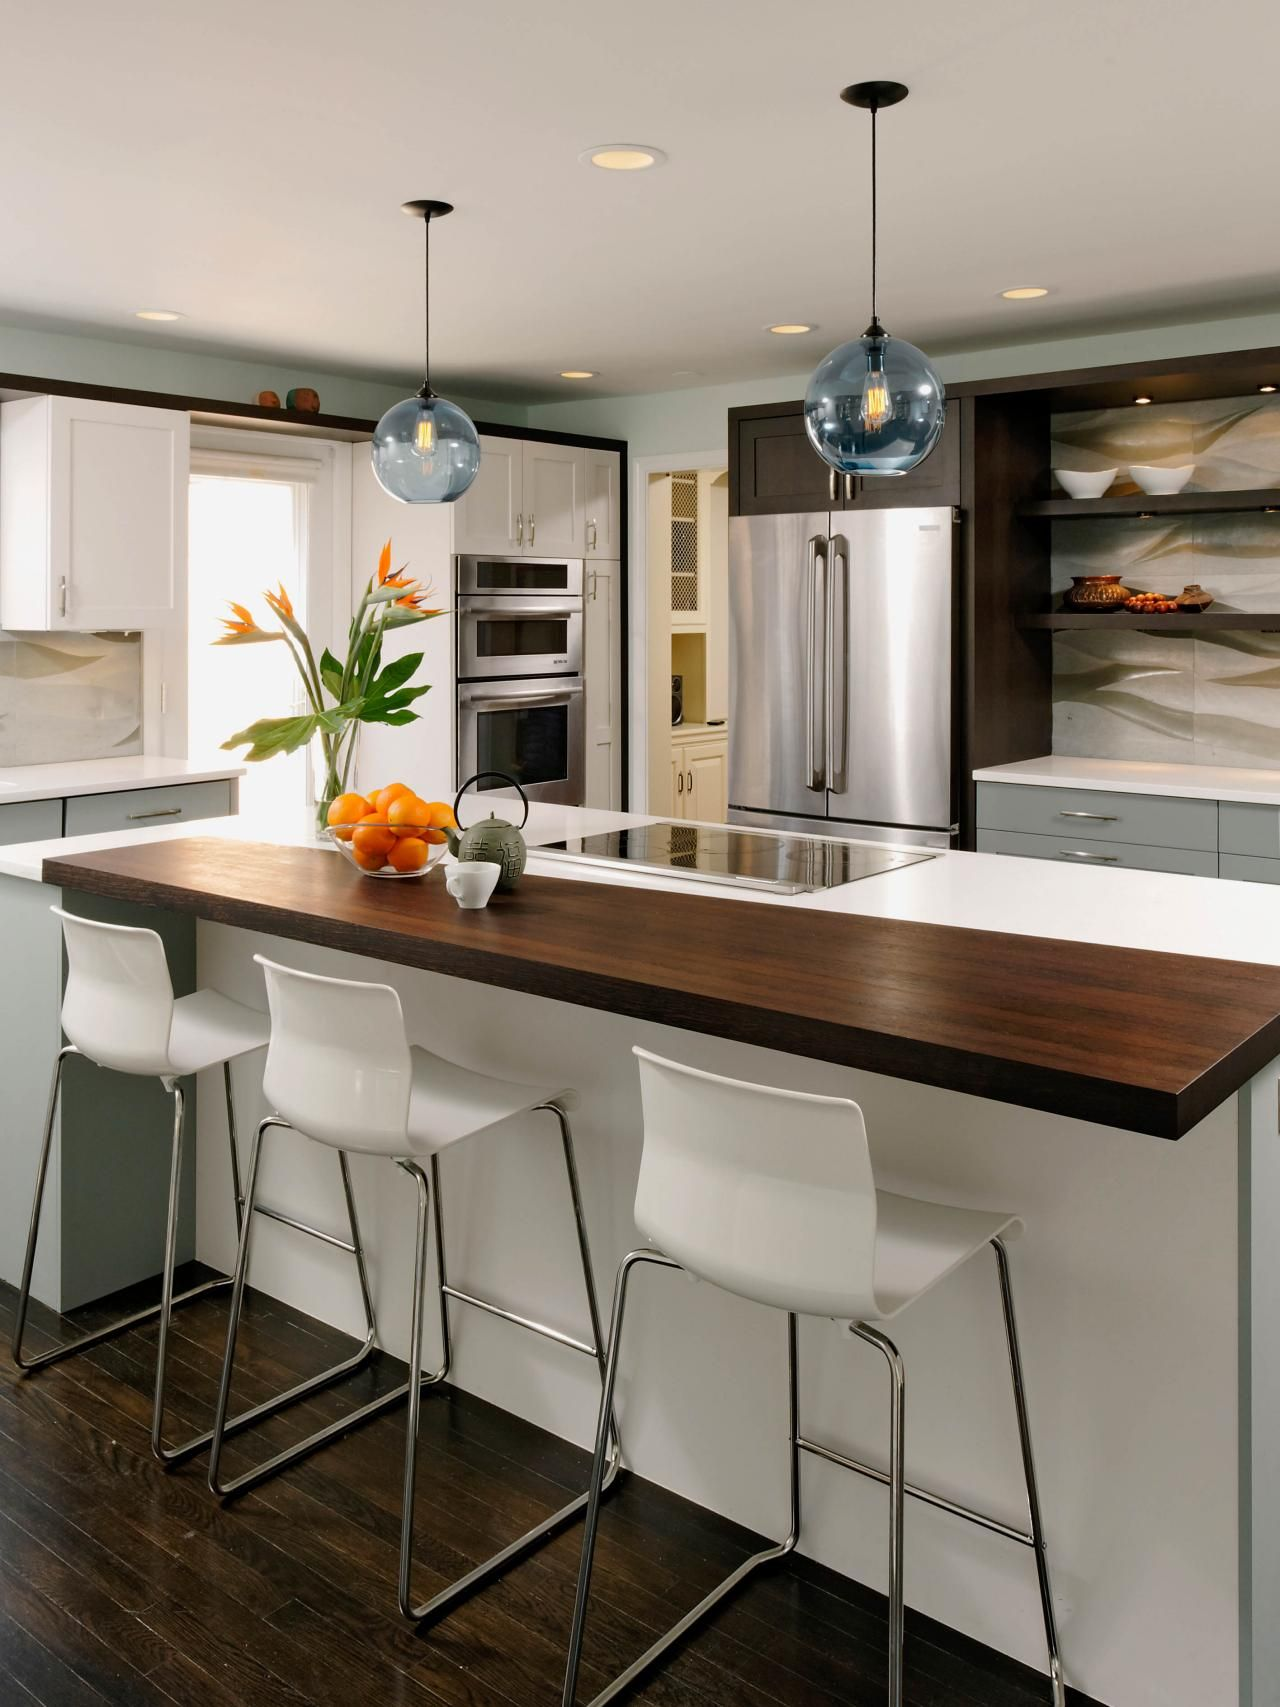 best kitchen countertop pictures: color & material ideas | hgtv